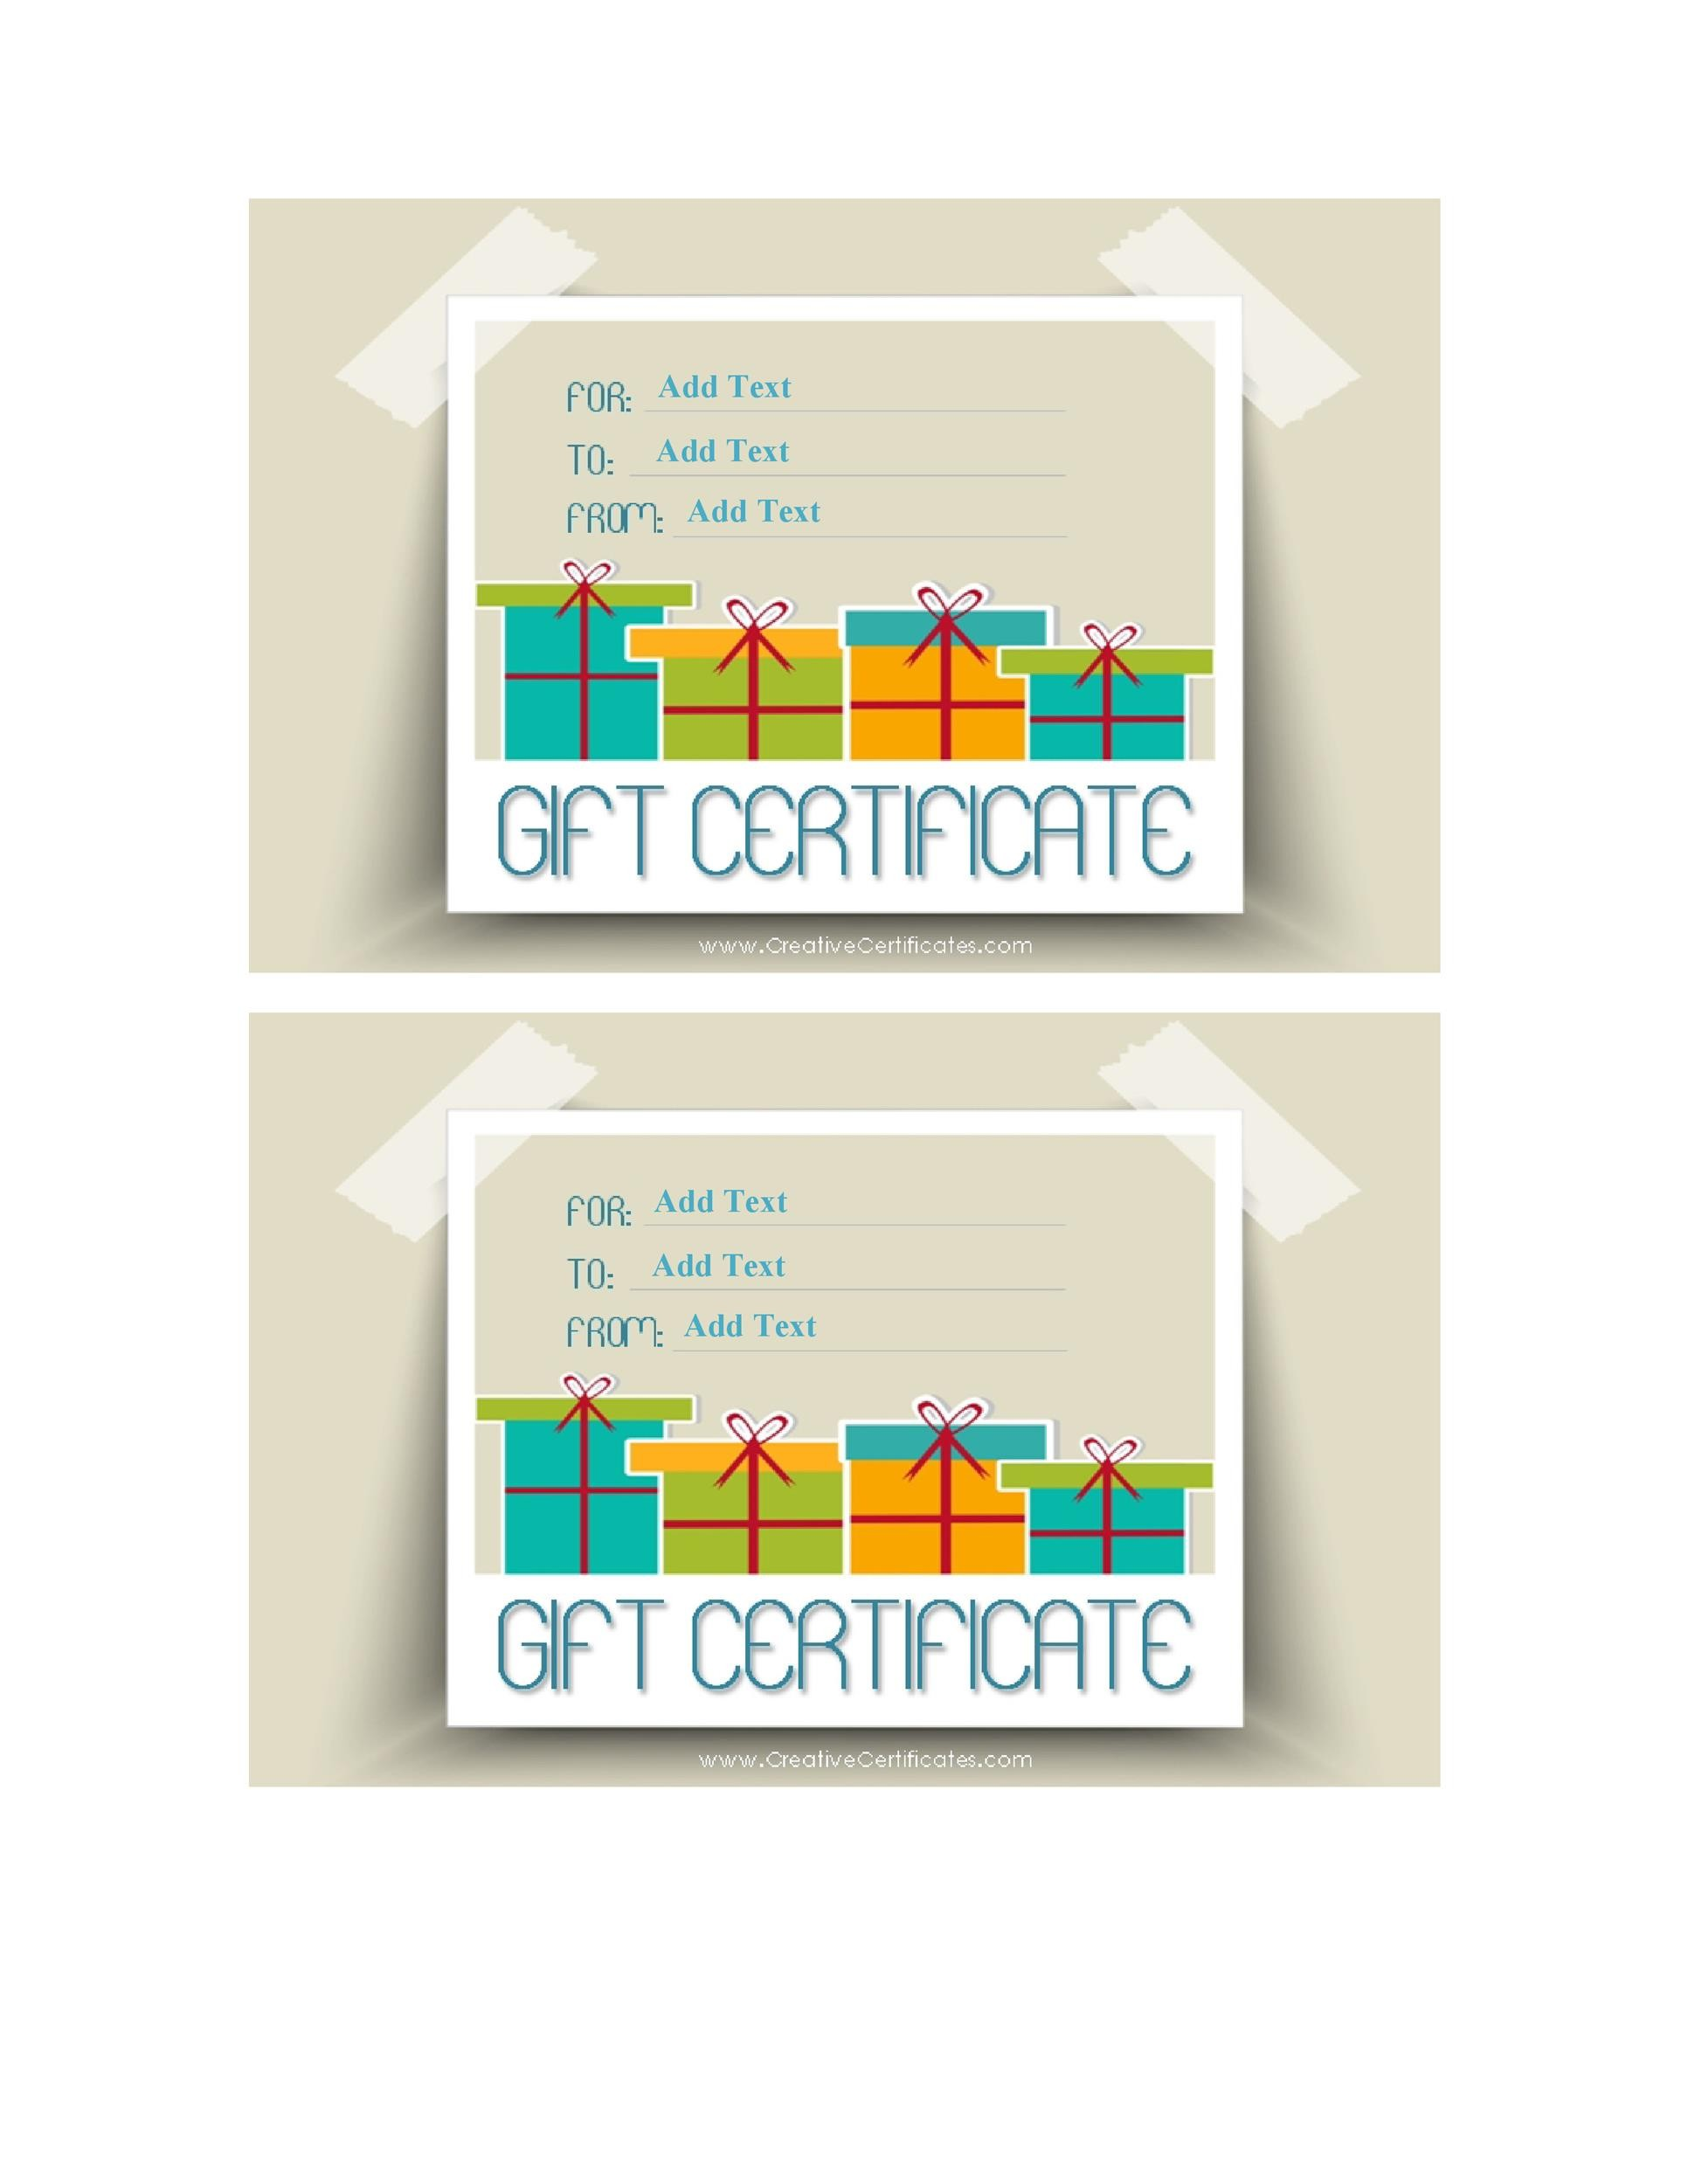 40+ Free Gift Certificate Templates - Template Lab - free template for gift certificate